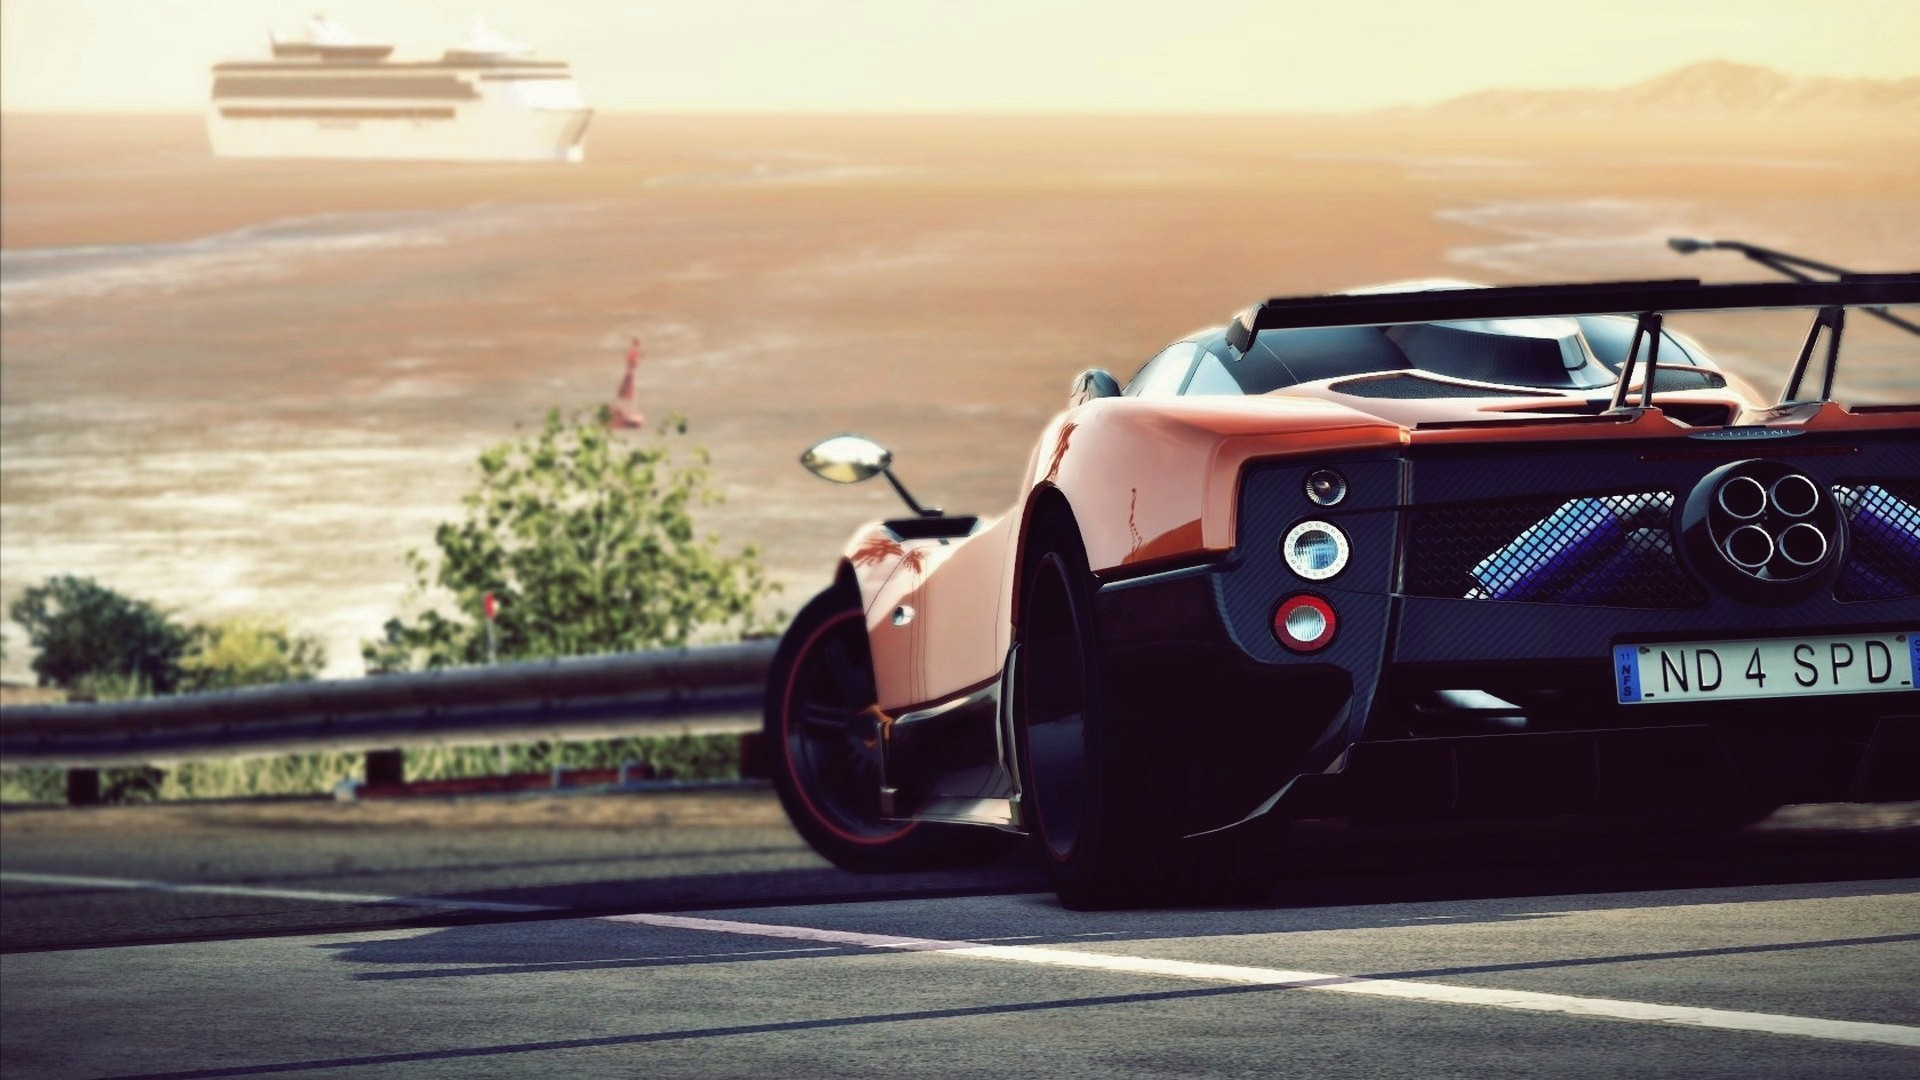 50 super sports car wallpapers that'll blow your desktop away